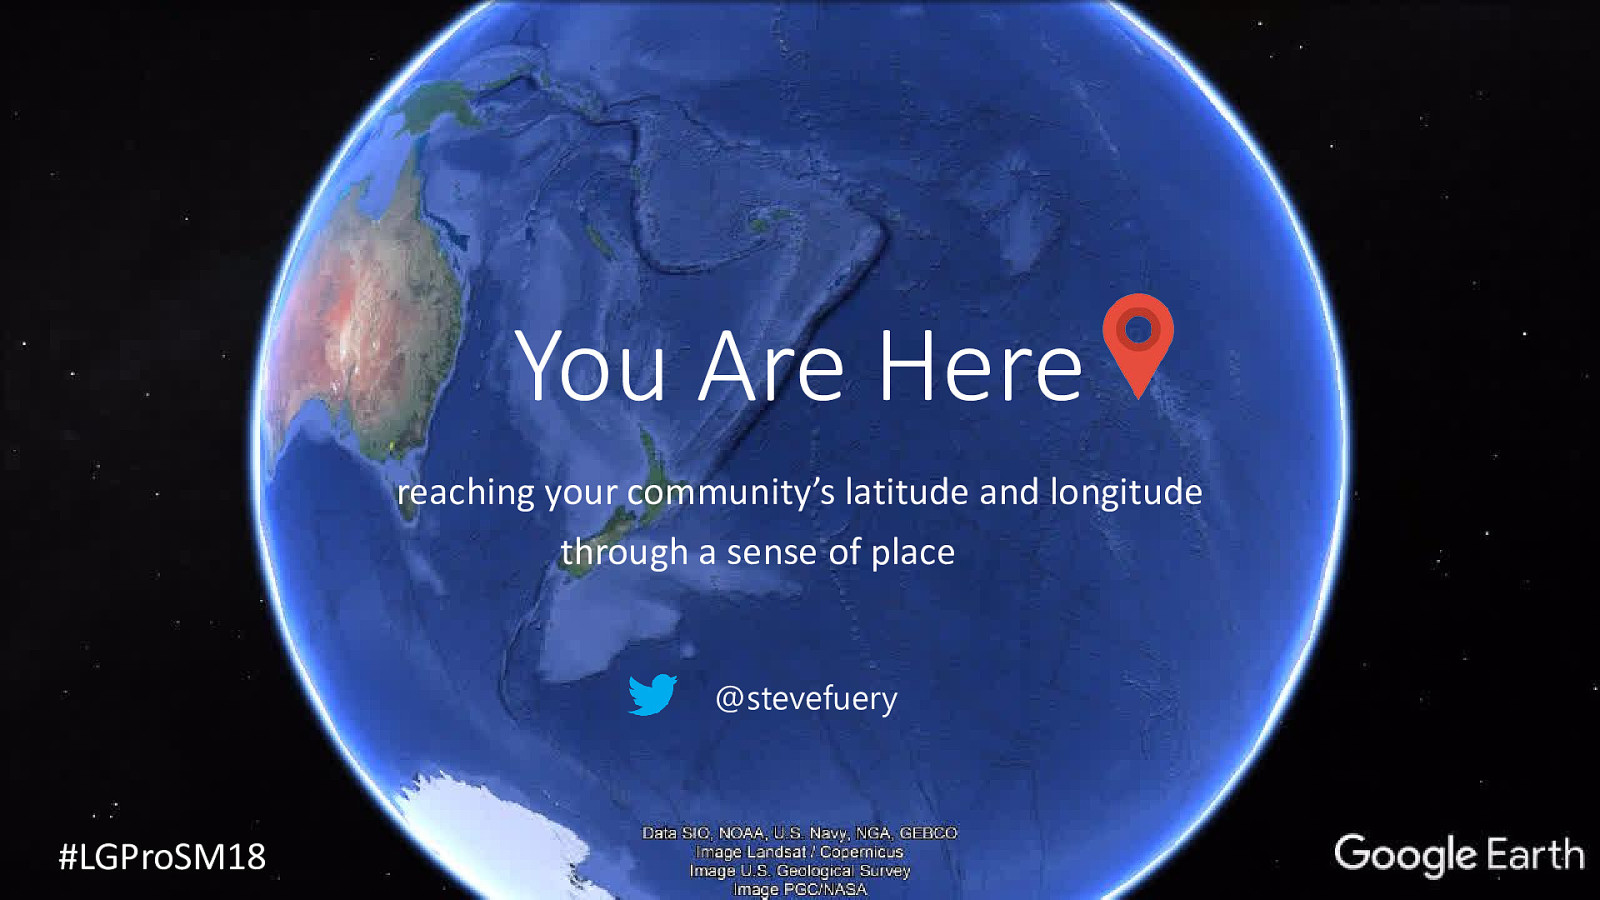 You Are Here! (opening slide)